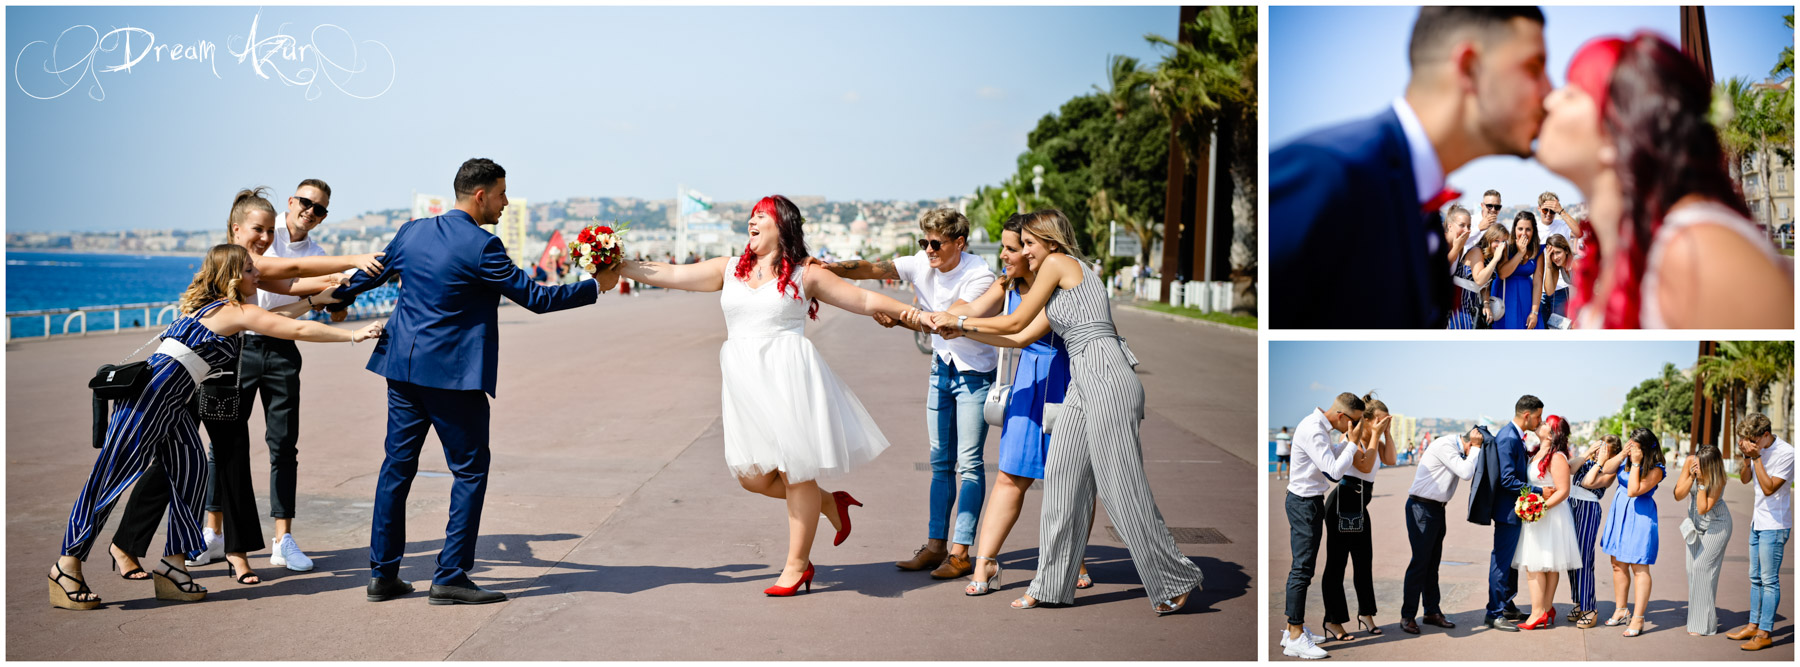 190824COMPO-Mariage-Cindy-et-Anthony-24